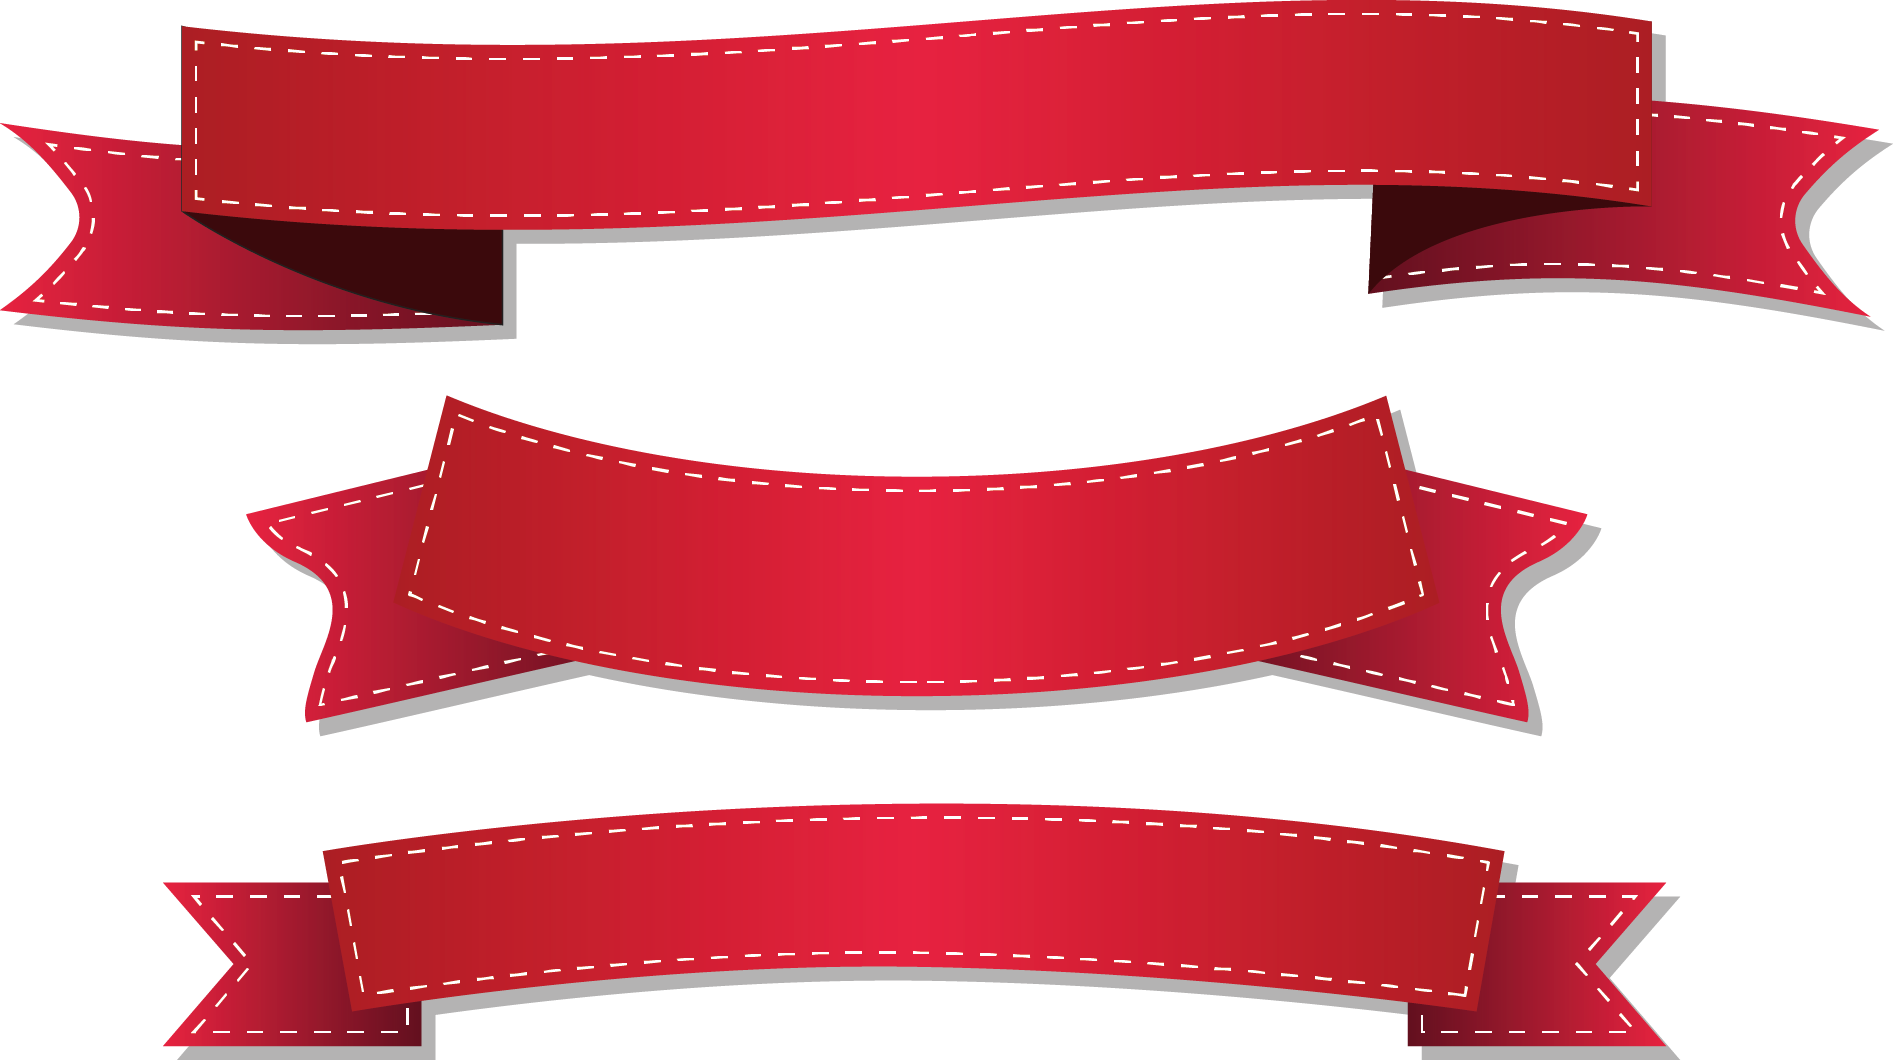 Red ribbon vector clipart images gallery for free download.